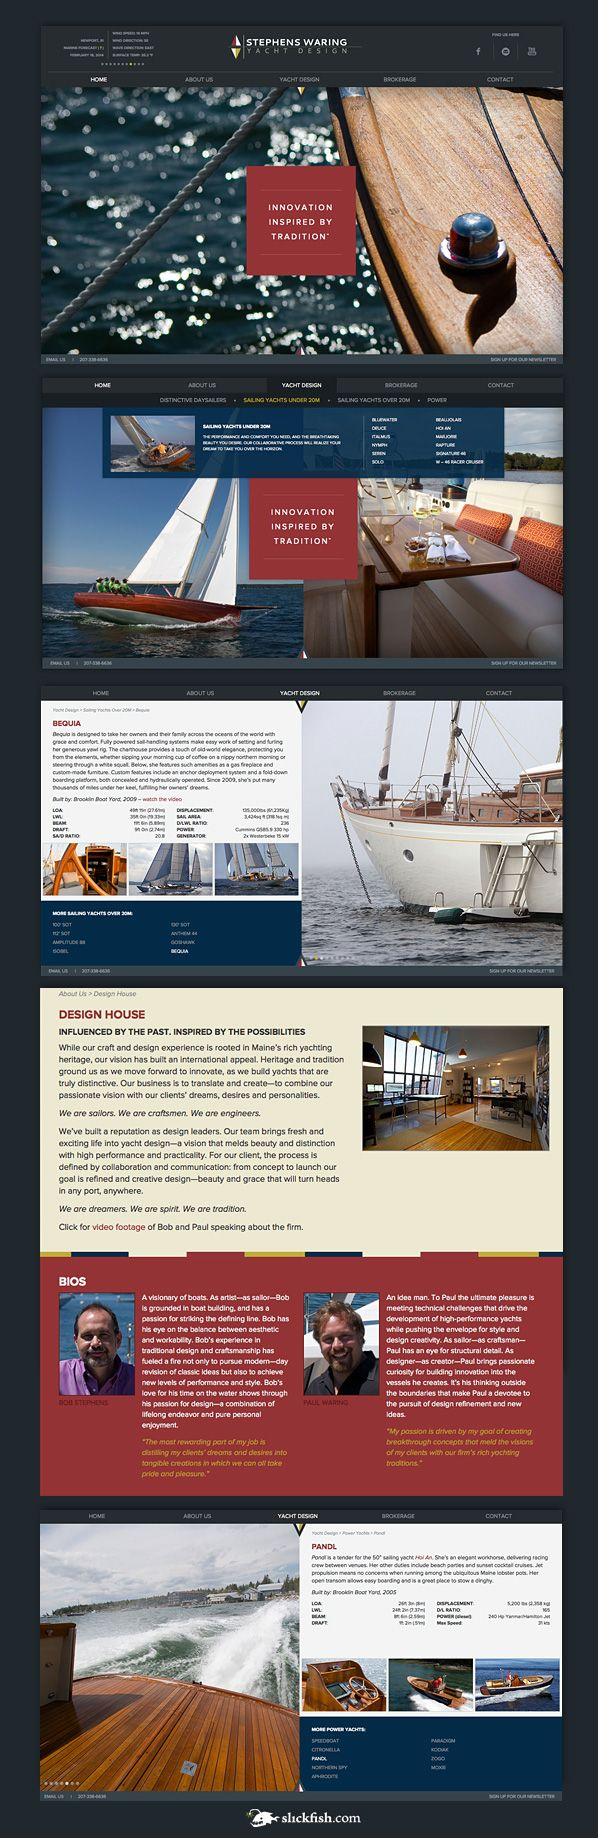 www.slickfish.com / web design composite for Stephens Waring Yacht Design, a custom yacht design company in Belfast, Maine.